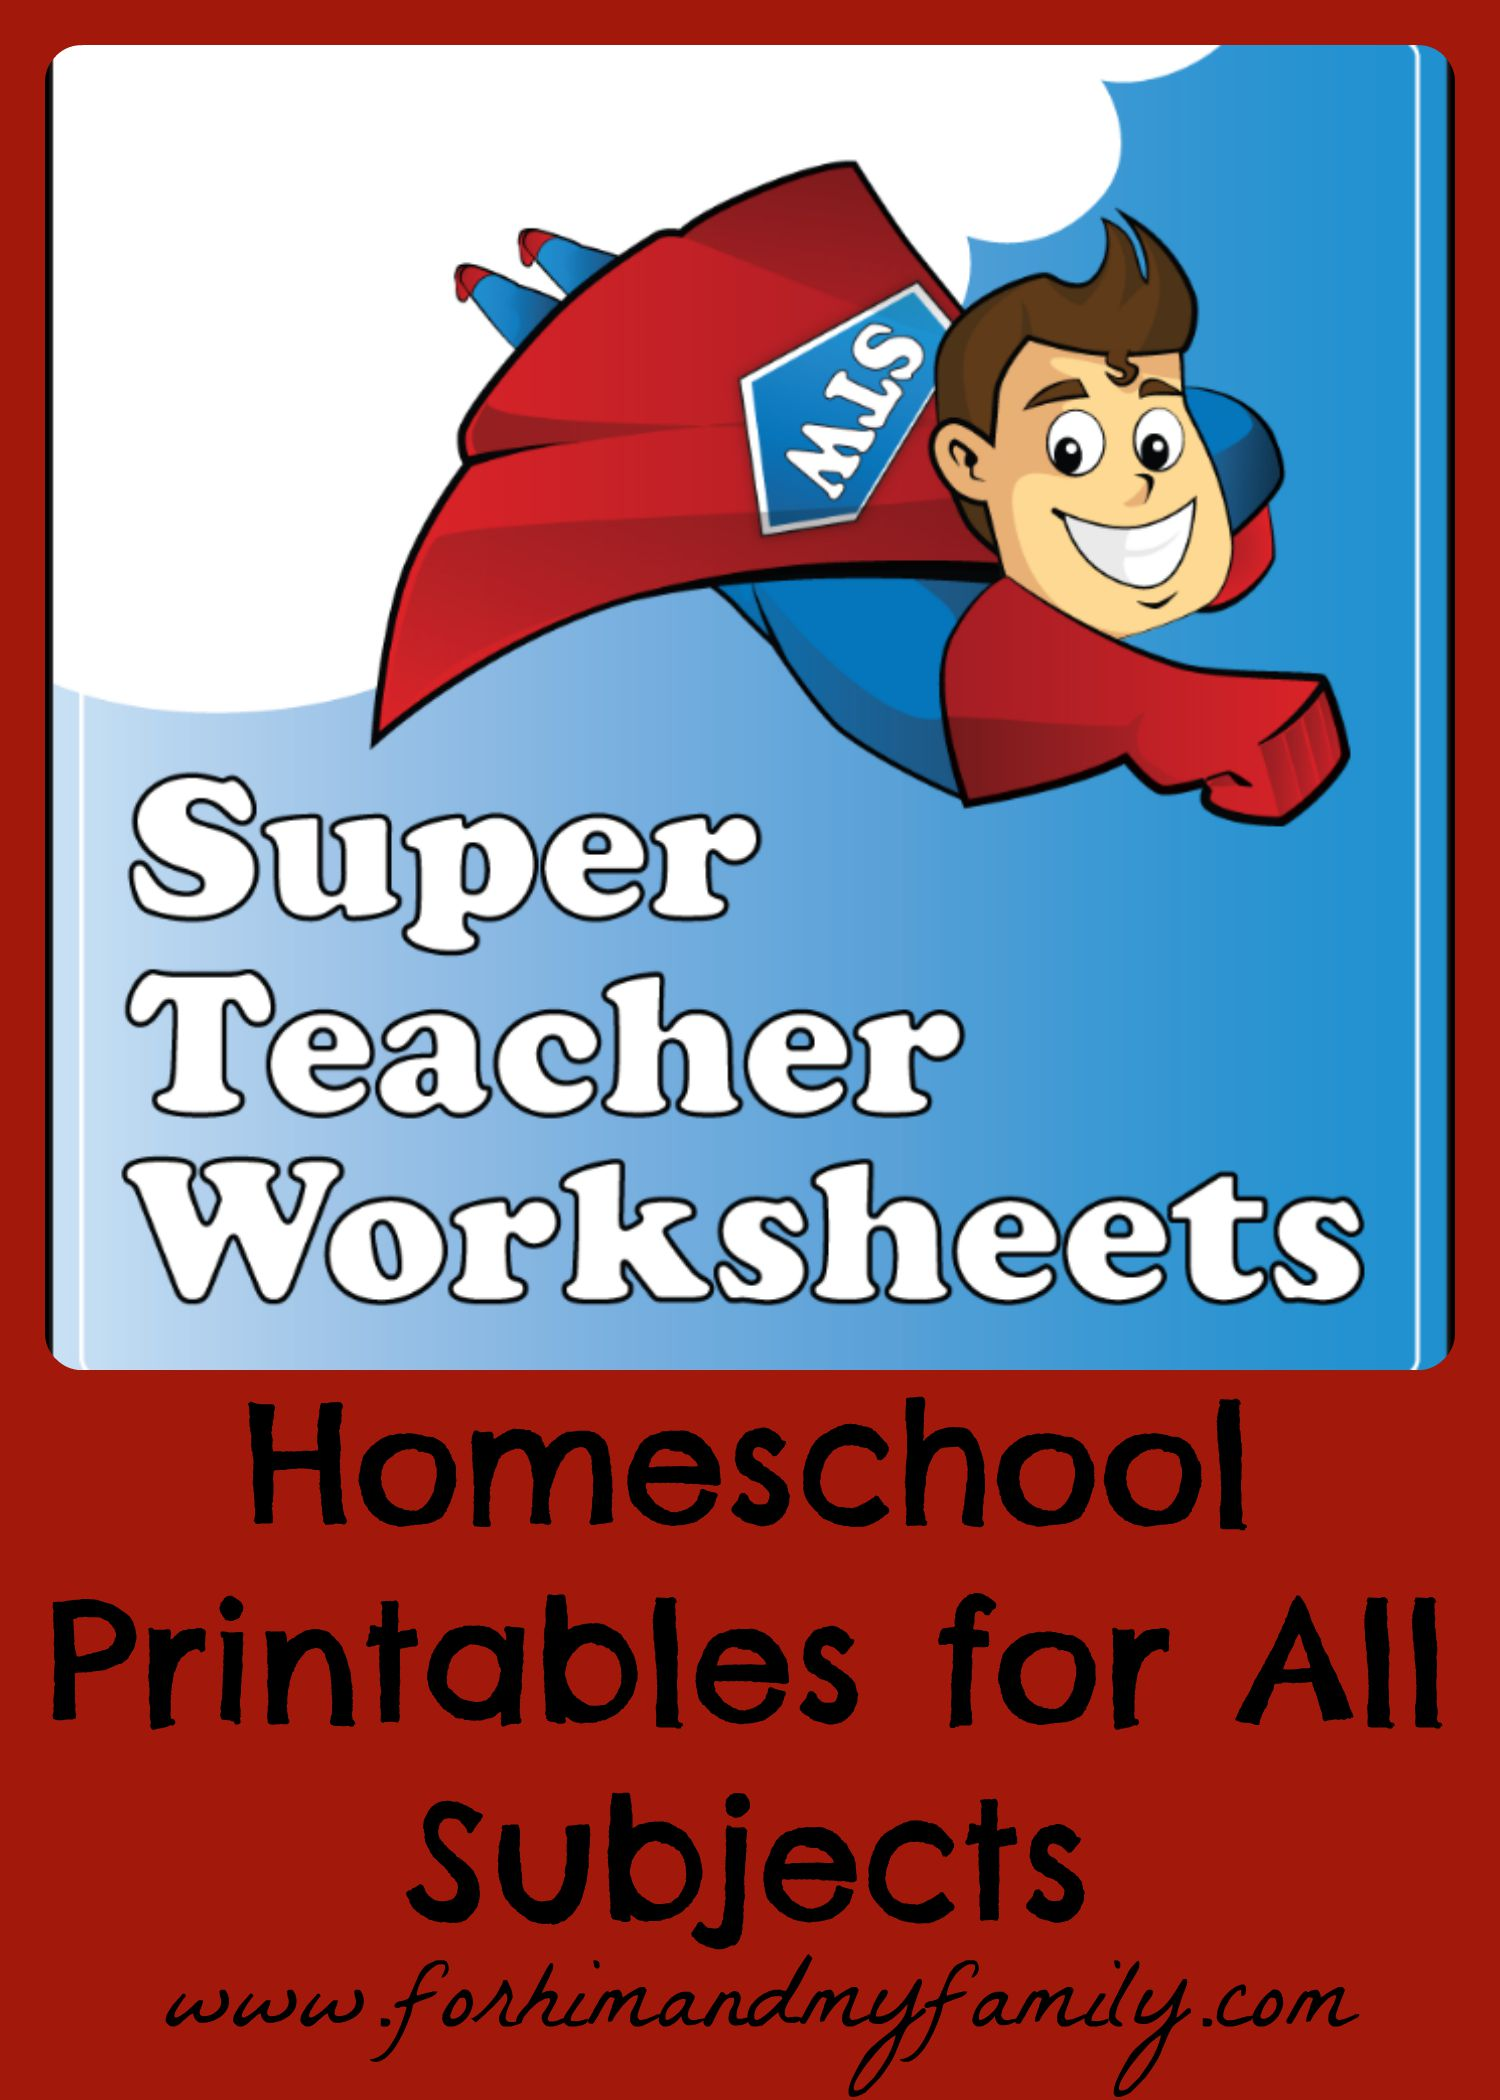 Homeschool Printables for ALL Subjects {TOS Crew Review} - For Him ...